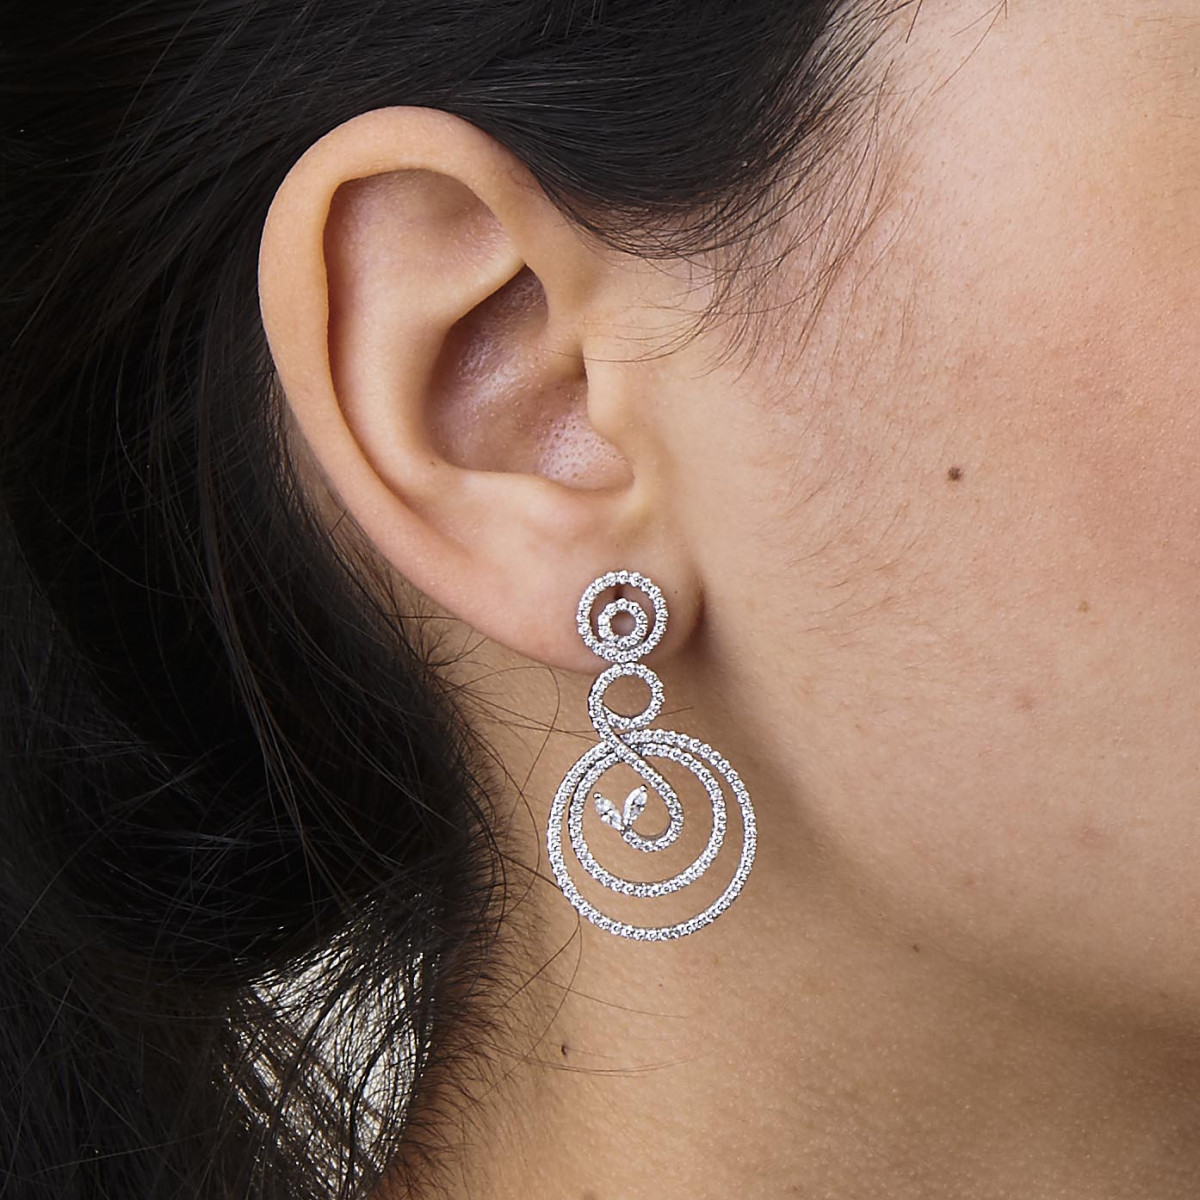 GOLD AND DIAMOND EARRING